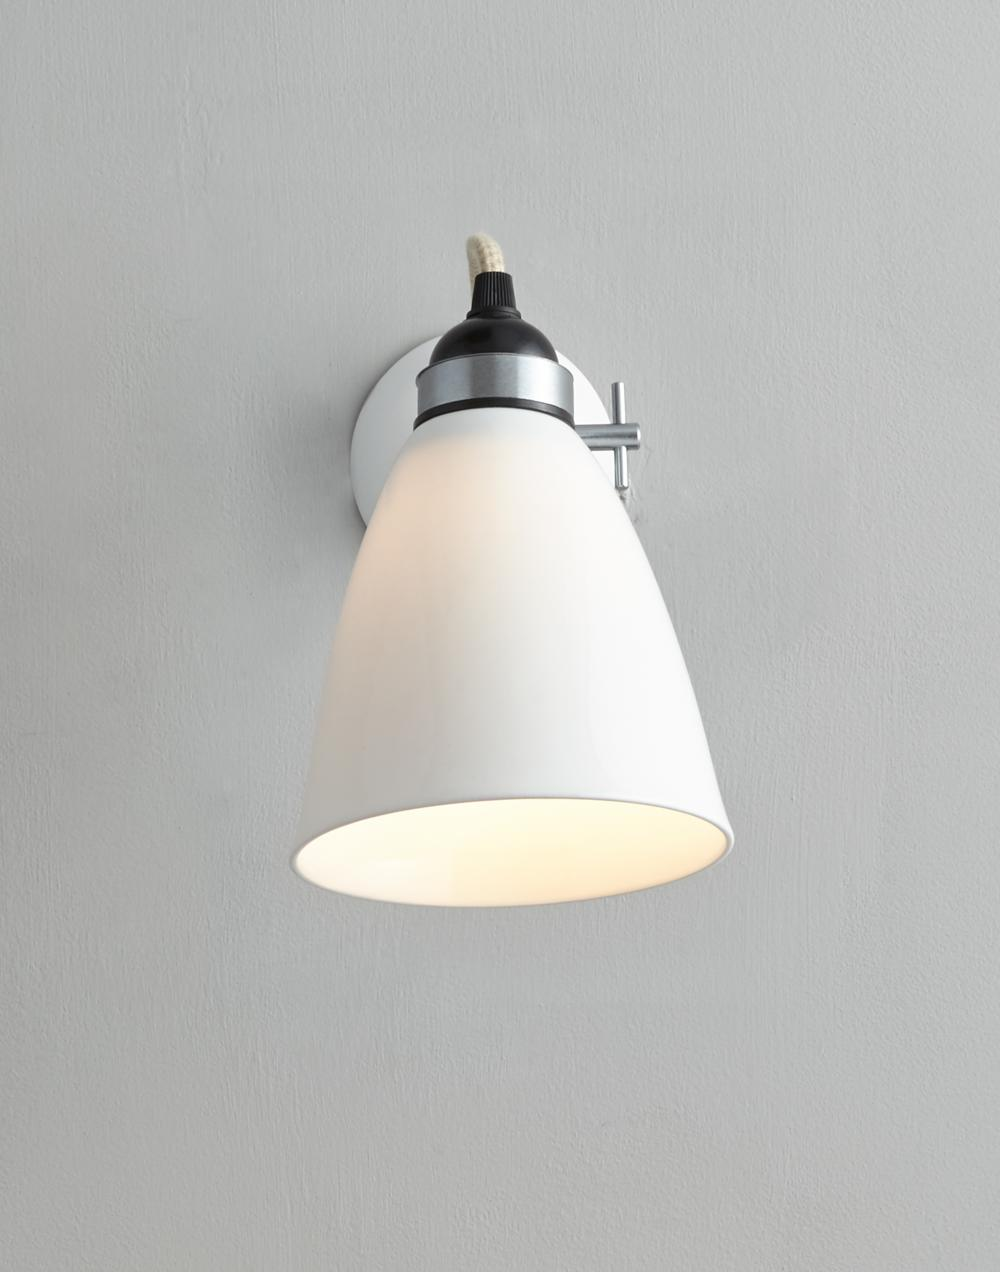 Hector dome wall light